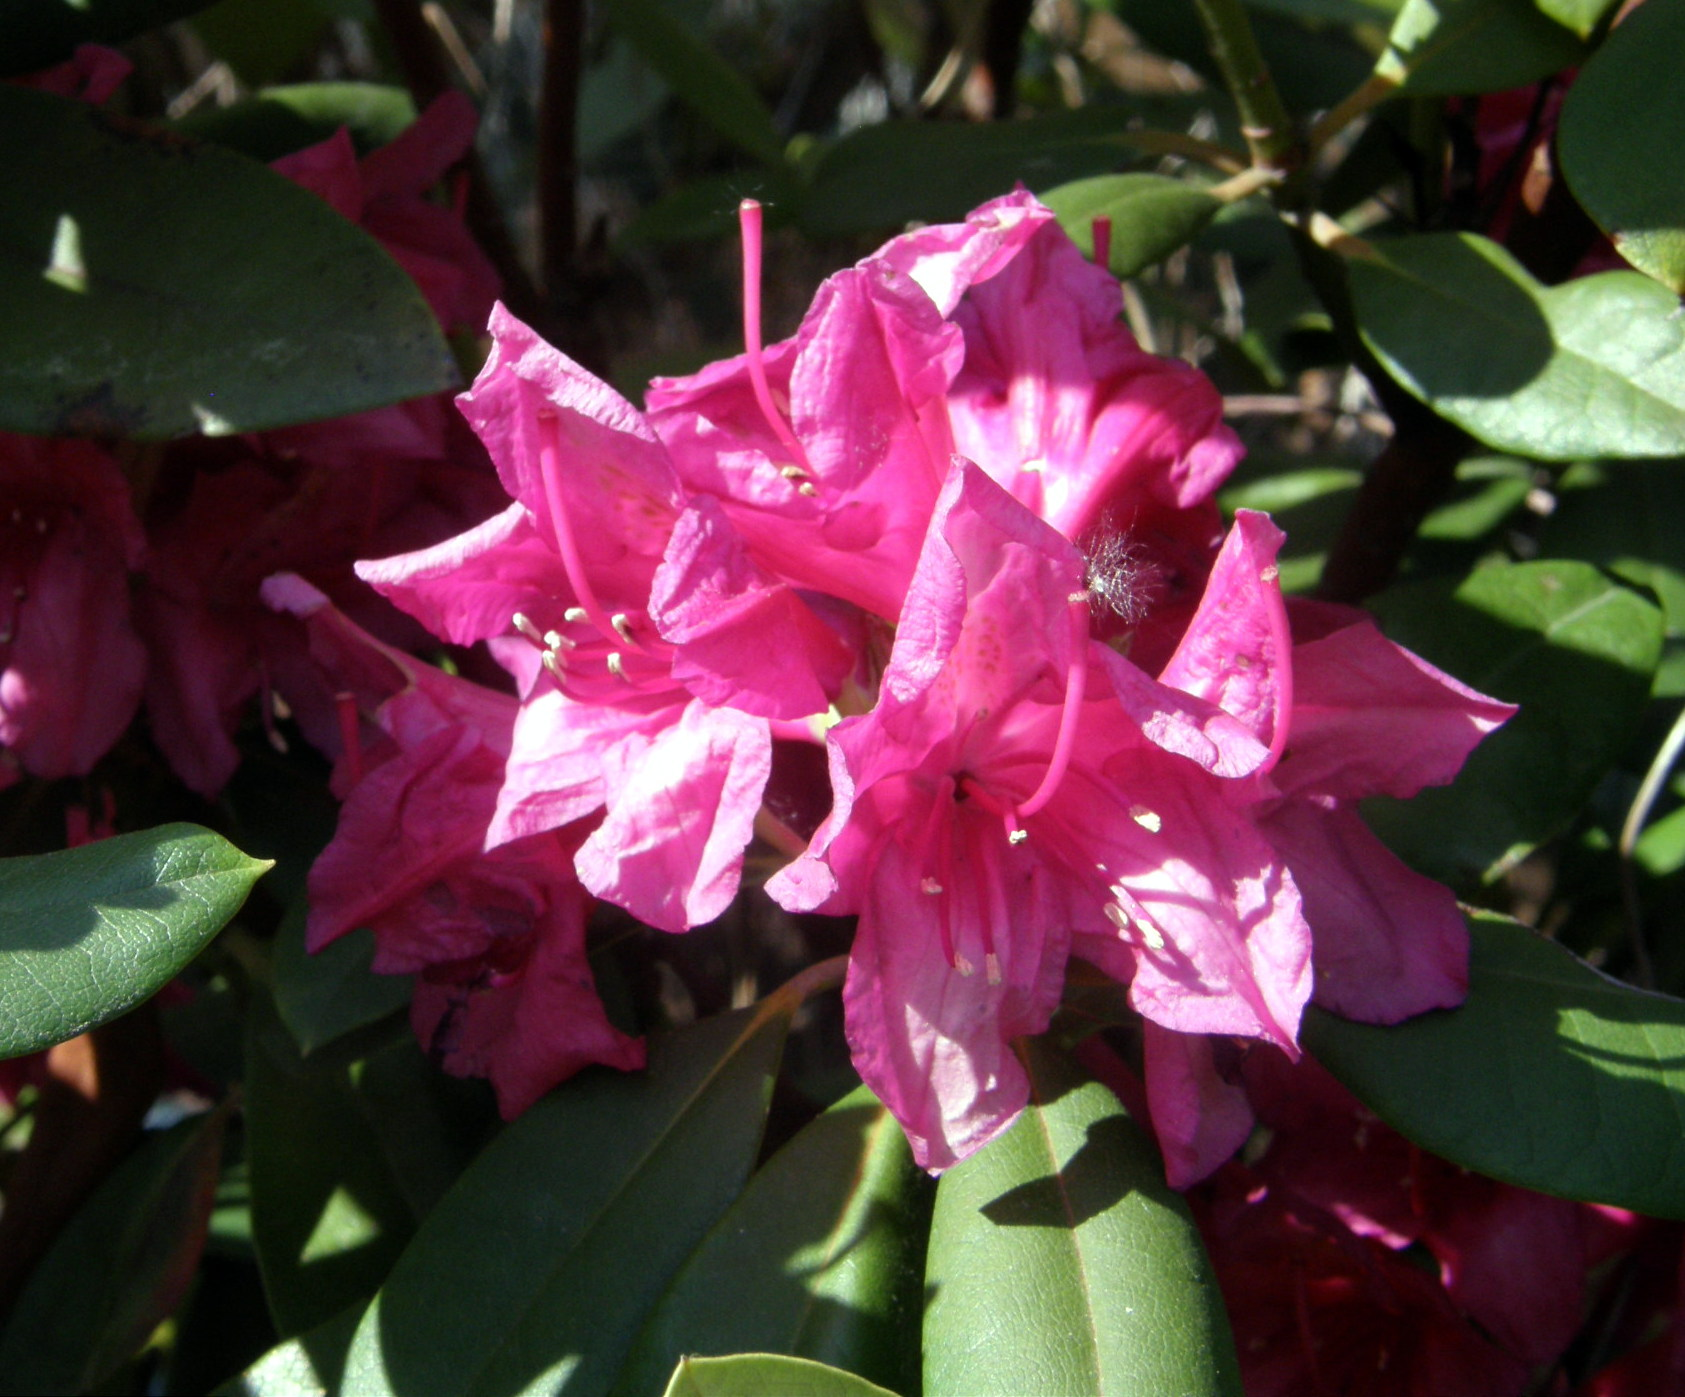 Rhododendron Dr H.C. Dresselhuys